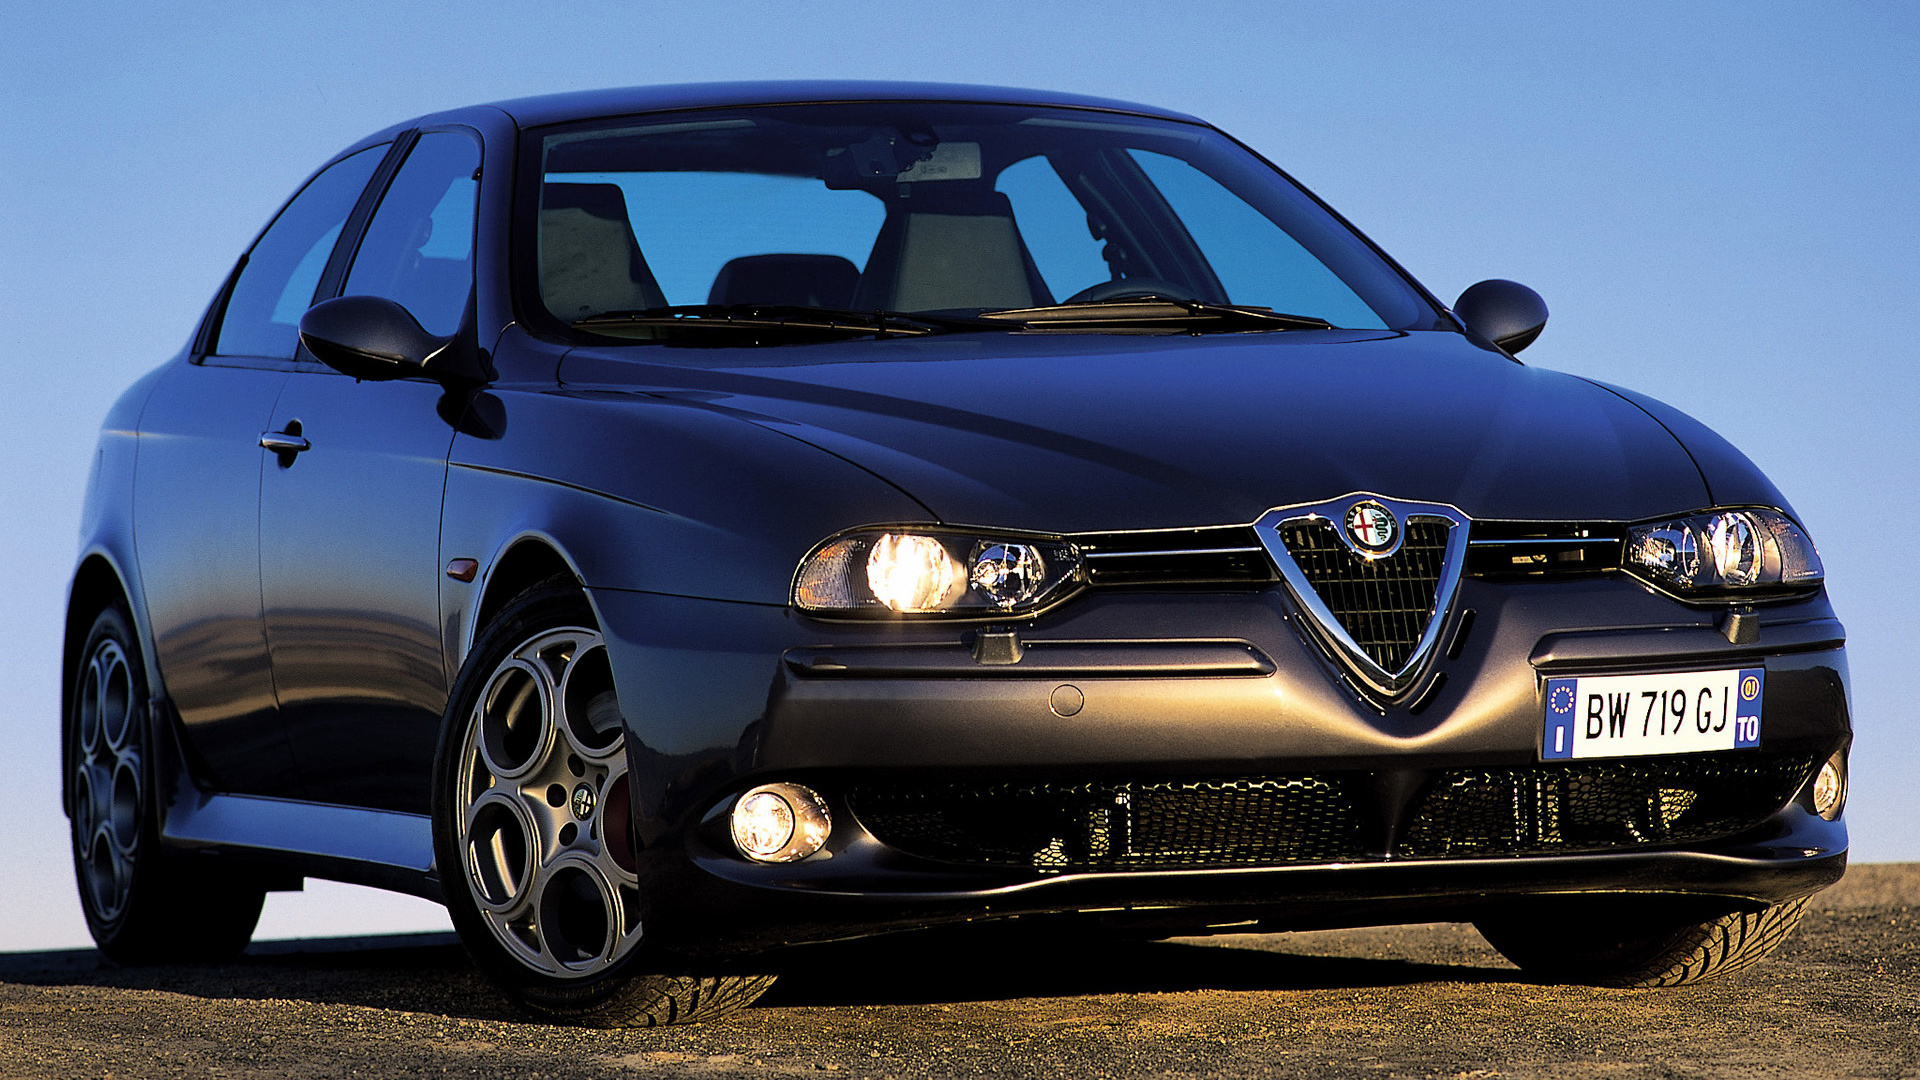 alfa romeo 156 gta 2002 wallpapers and hd images car pixel. Black Bedroom Furniture Sets. Home Design Ideas